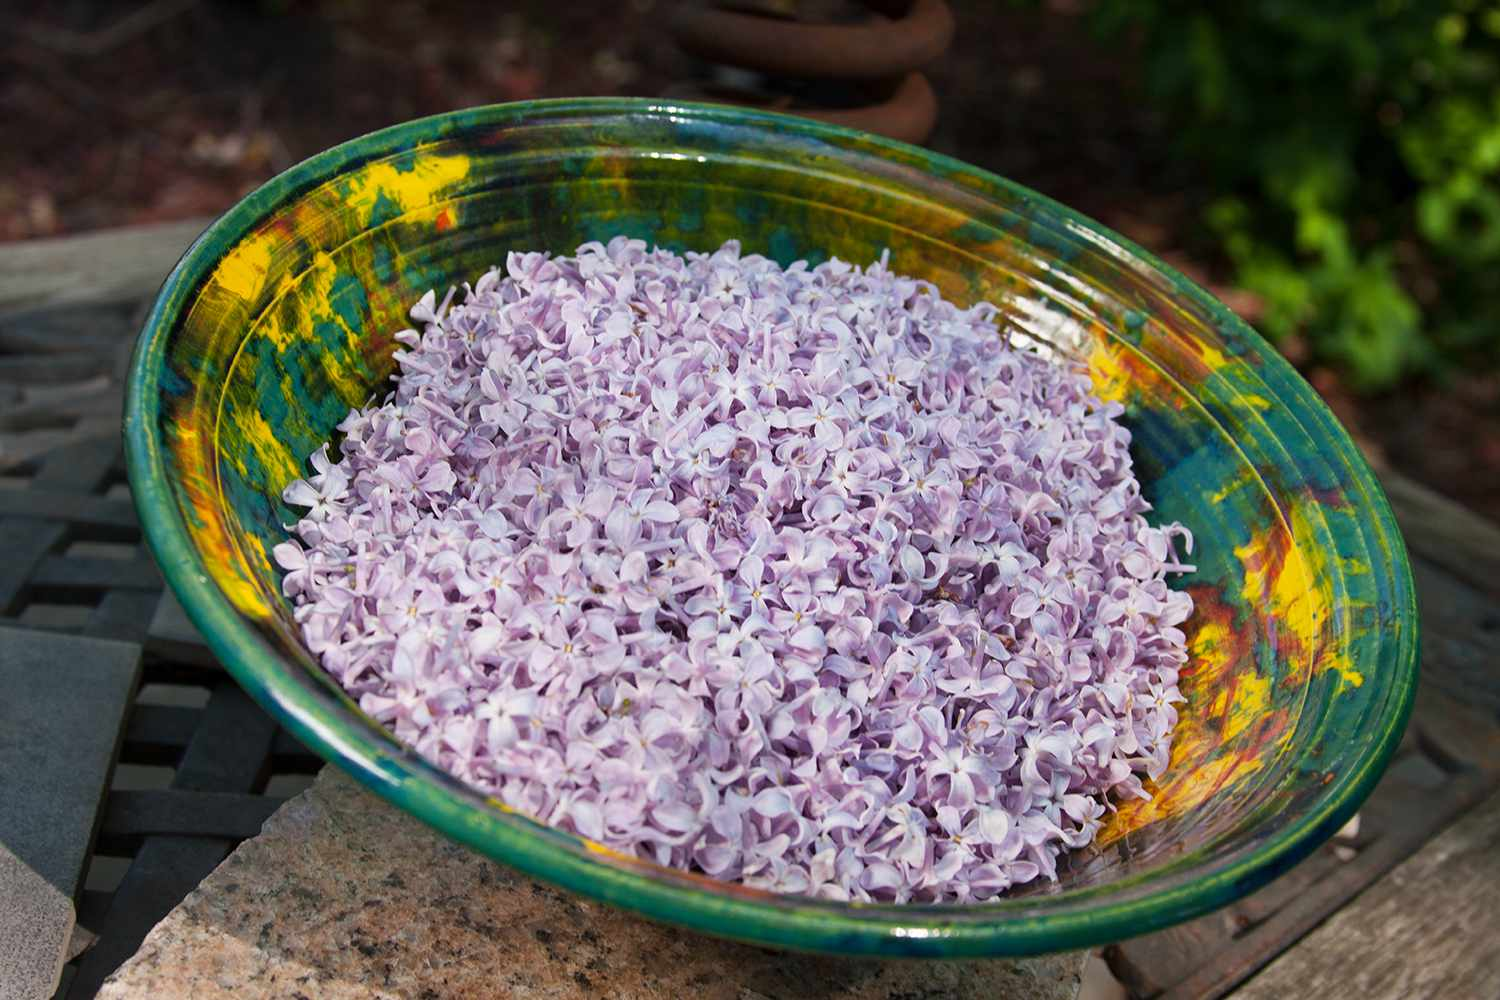 Lilac florets used to make a DIY lilac simple syrup